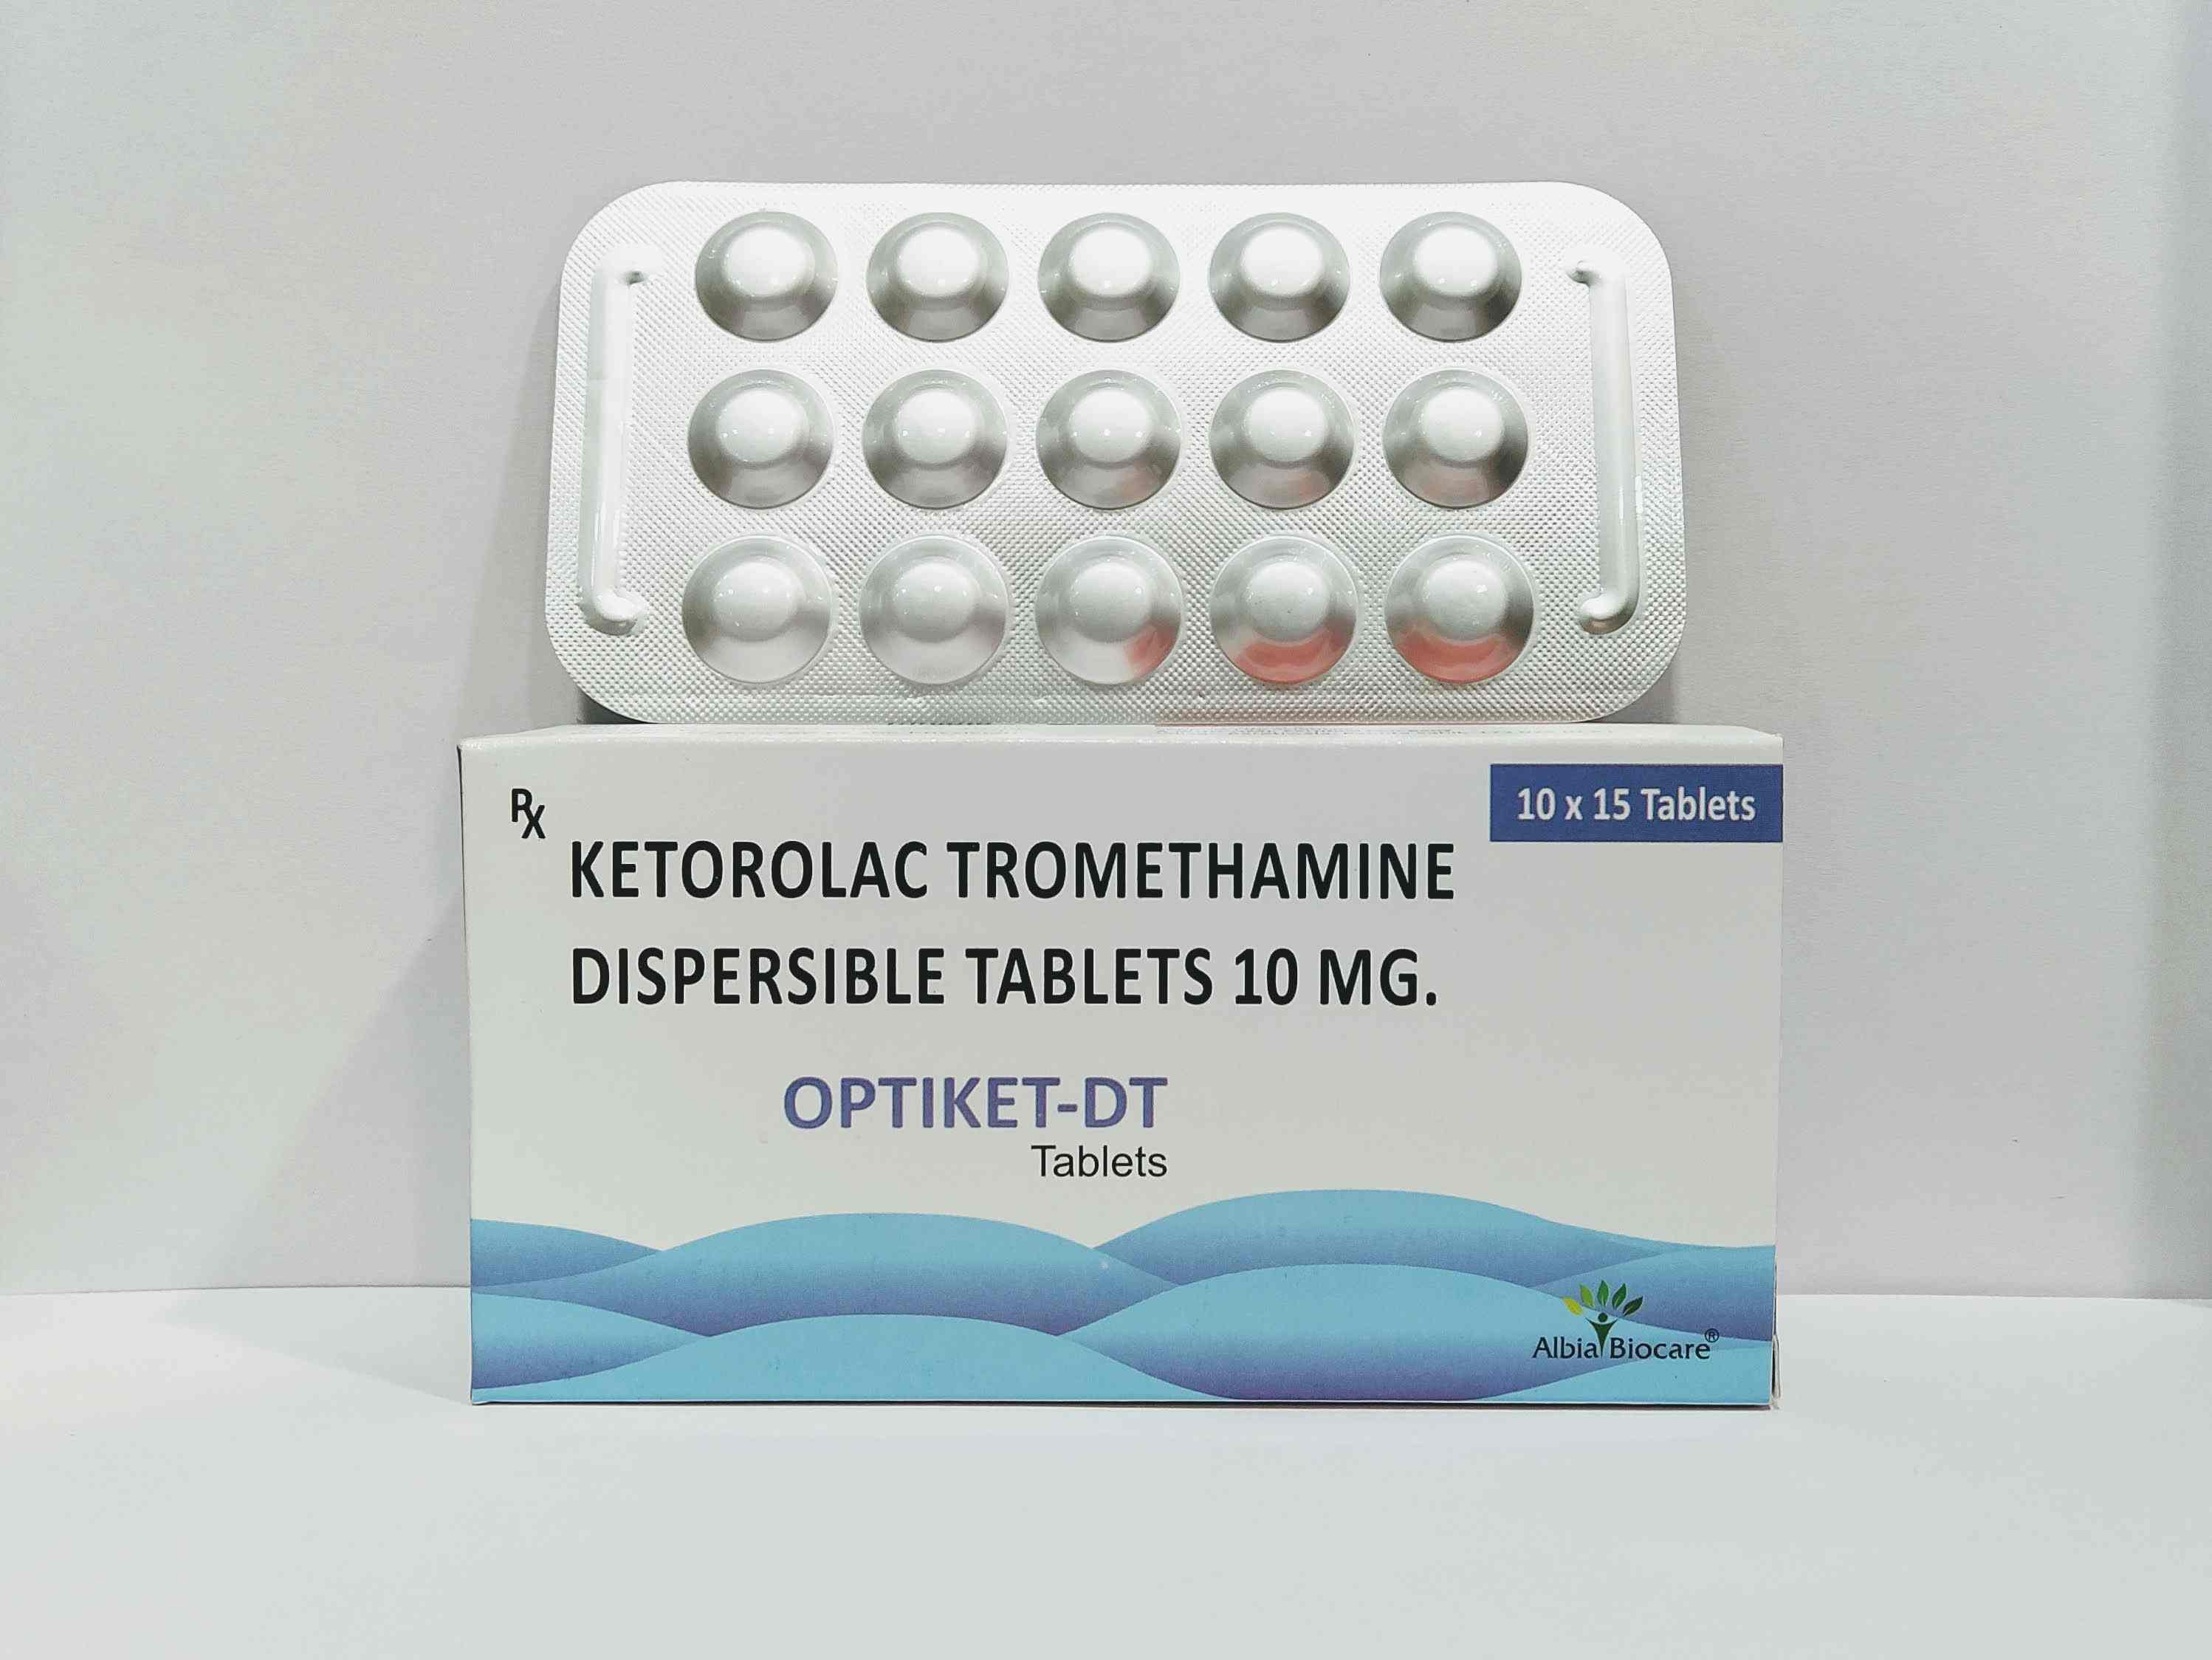 OPTIKET-DT Tablet | Ketorolac 10 mg Dispersible Tablets